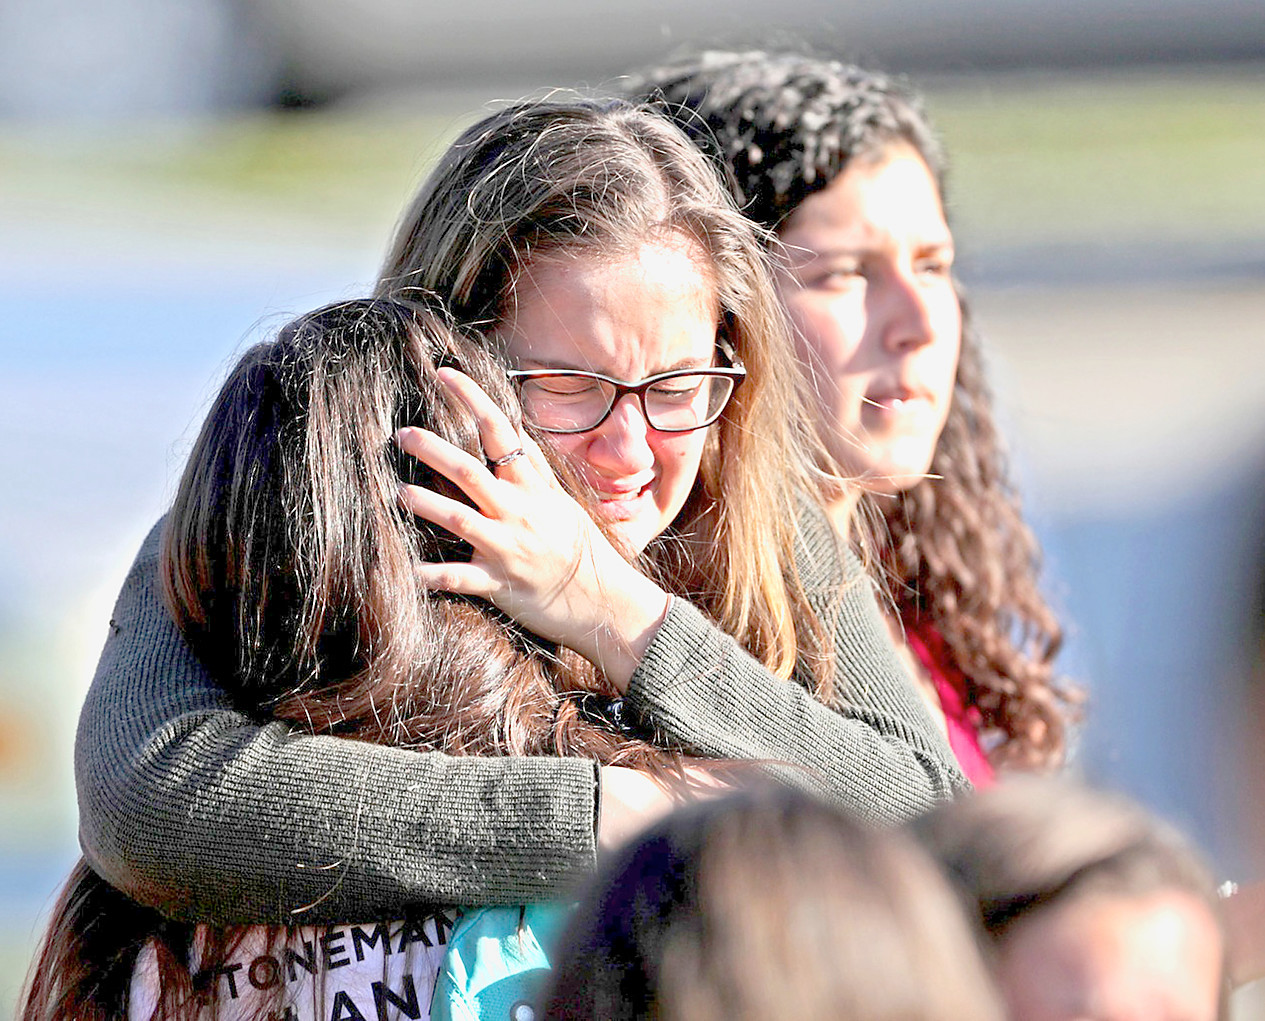 EMOTIONS RAN HIGH in the immediate aftermath of the Feb. 14 shootings at Marjory Stoneman Douglas High School in Parkland, Fla. Photo courtesy of John McCall of the Sun Sentinel/TNS/Getty Images.